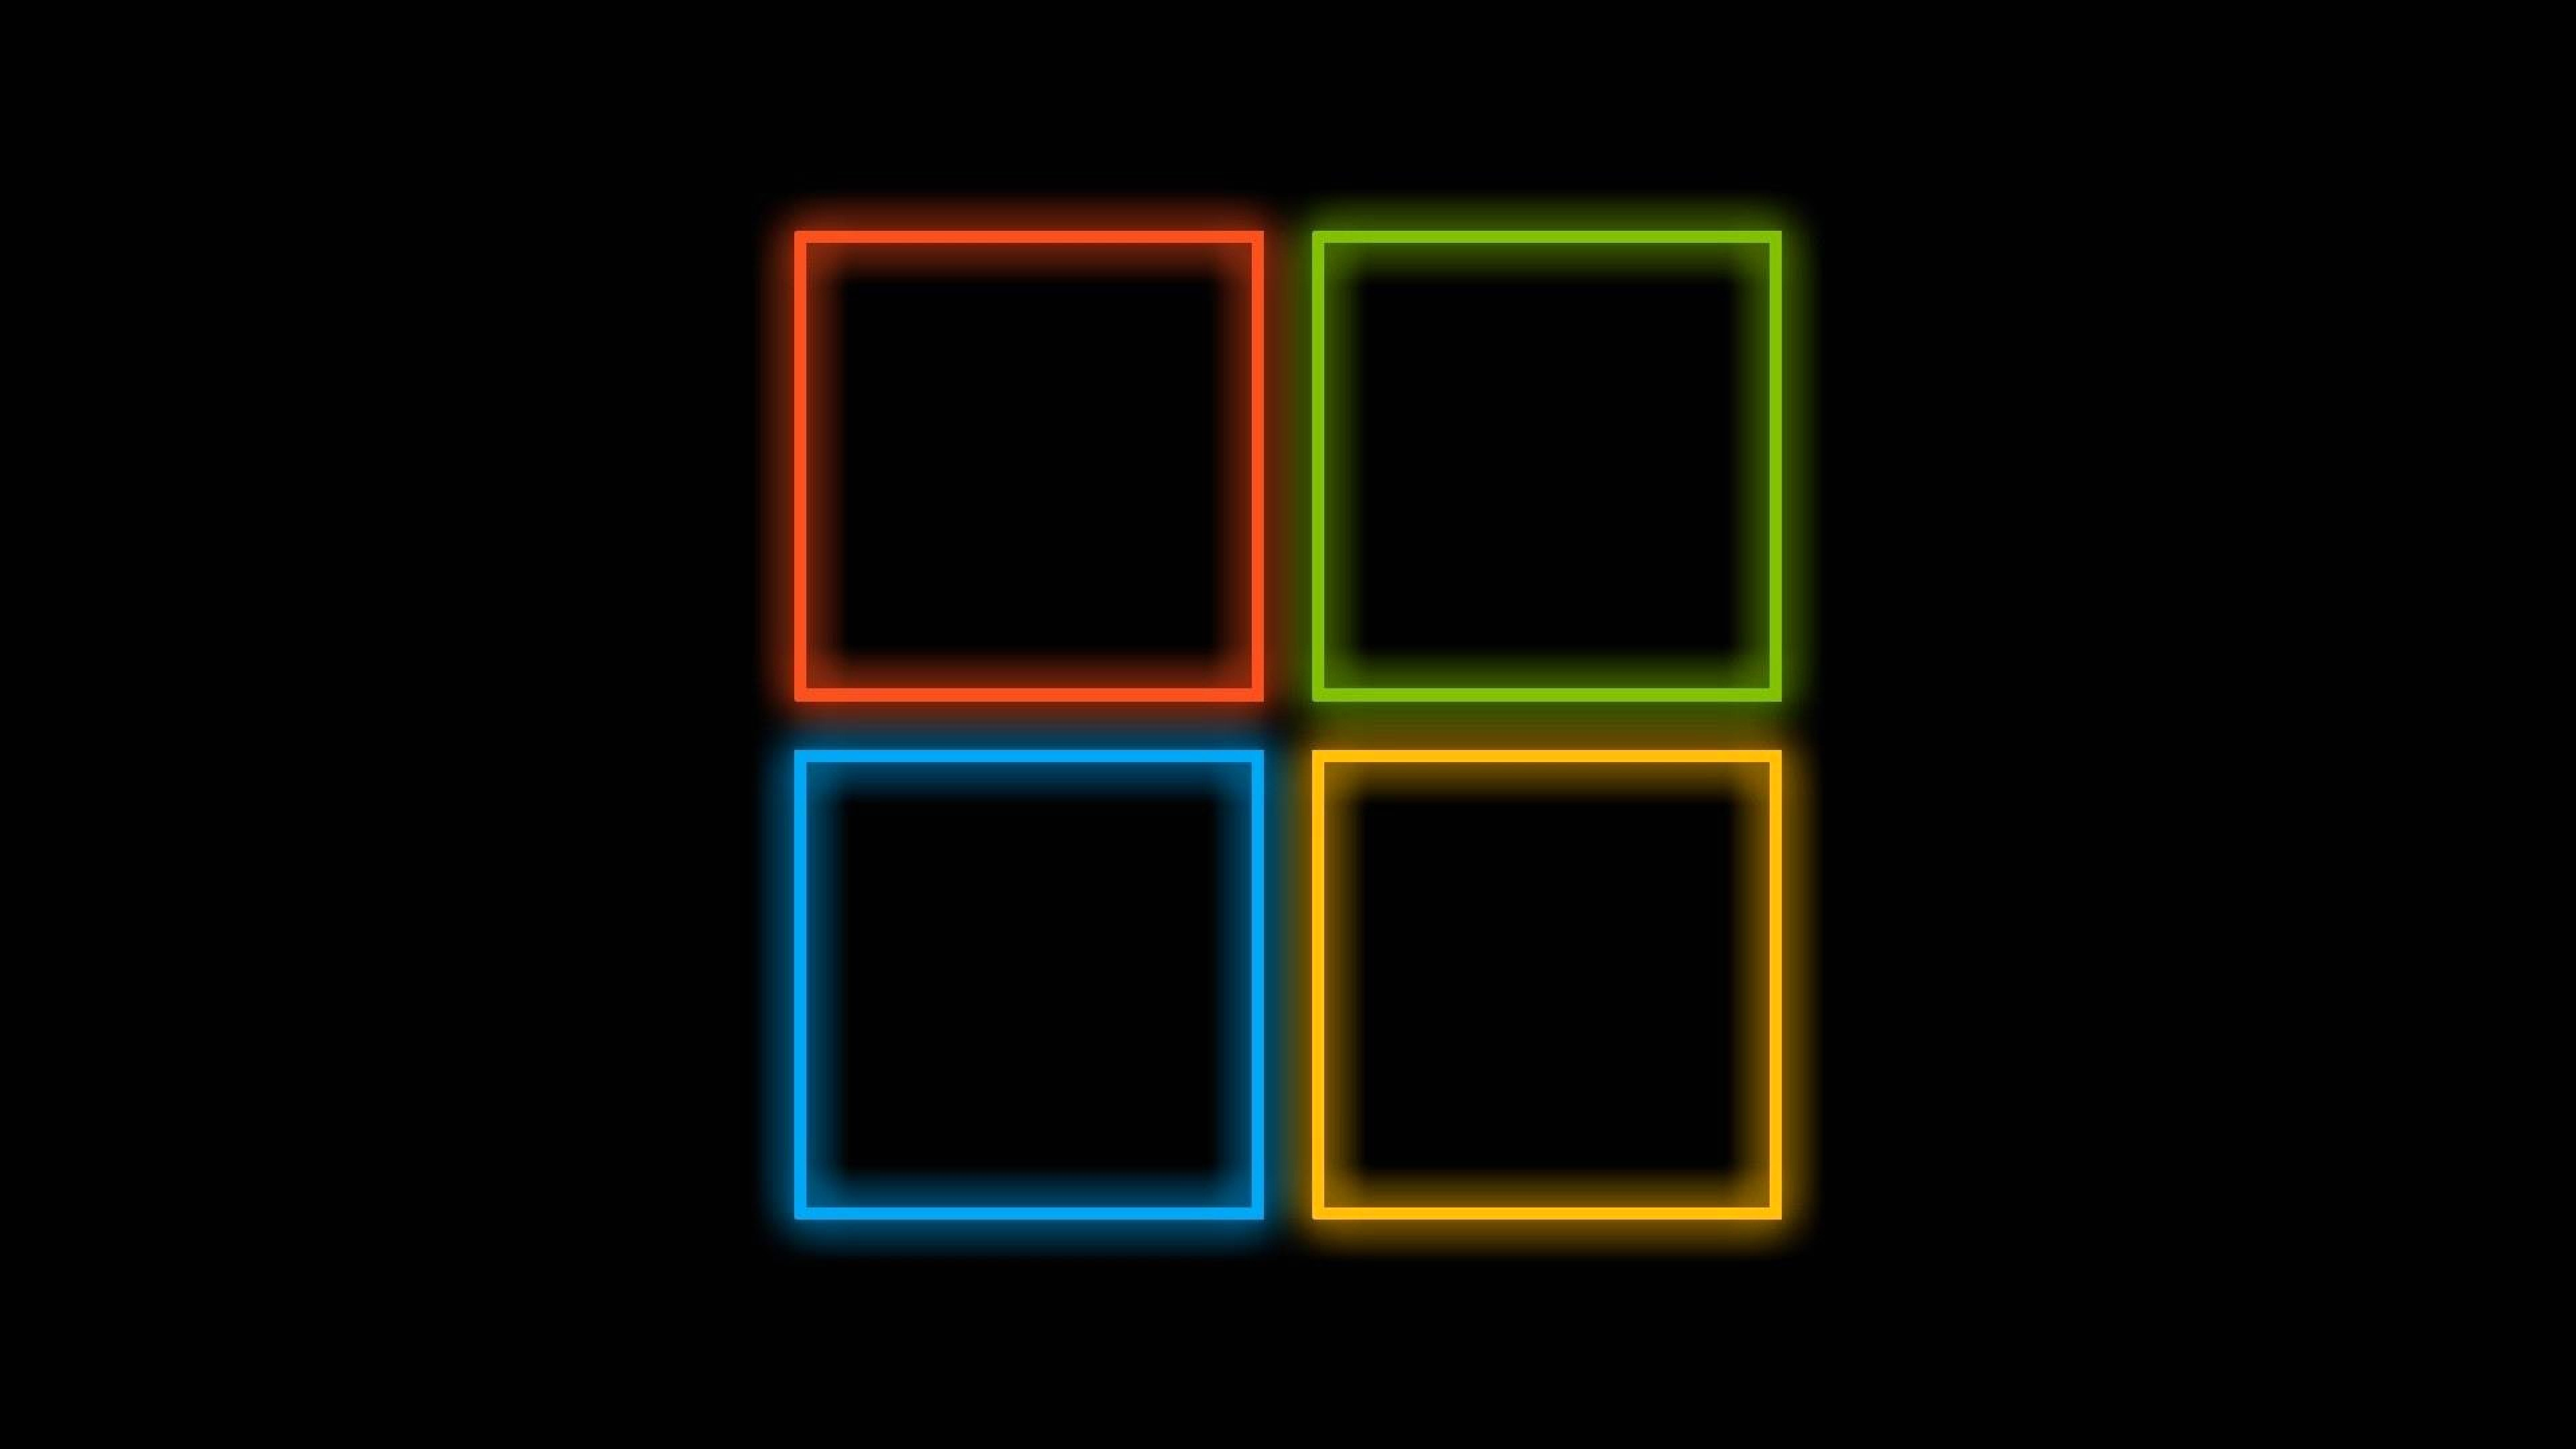 Preview wallpaper windows 10, operating system, minimalism 3840×2160